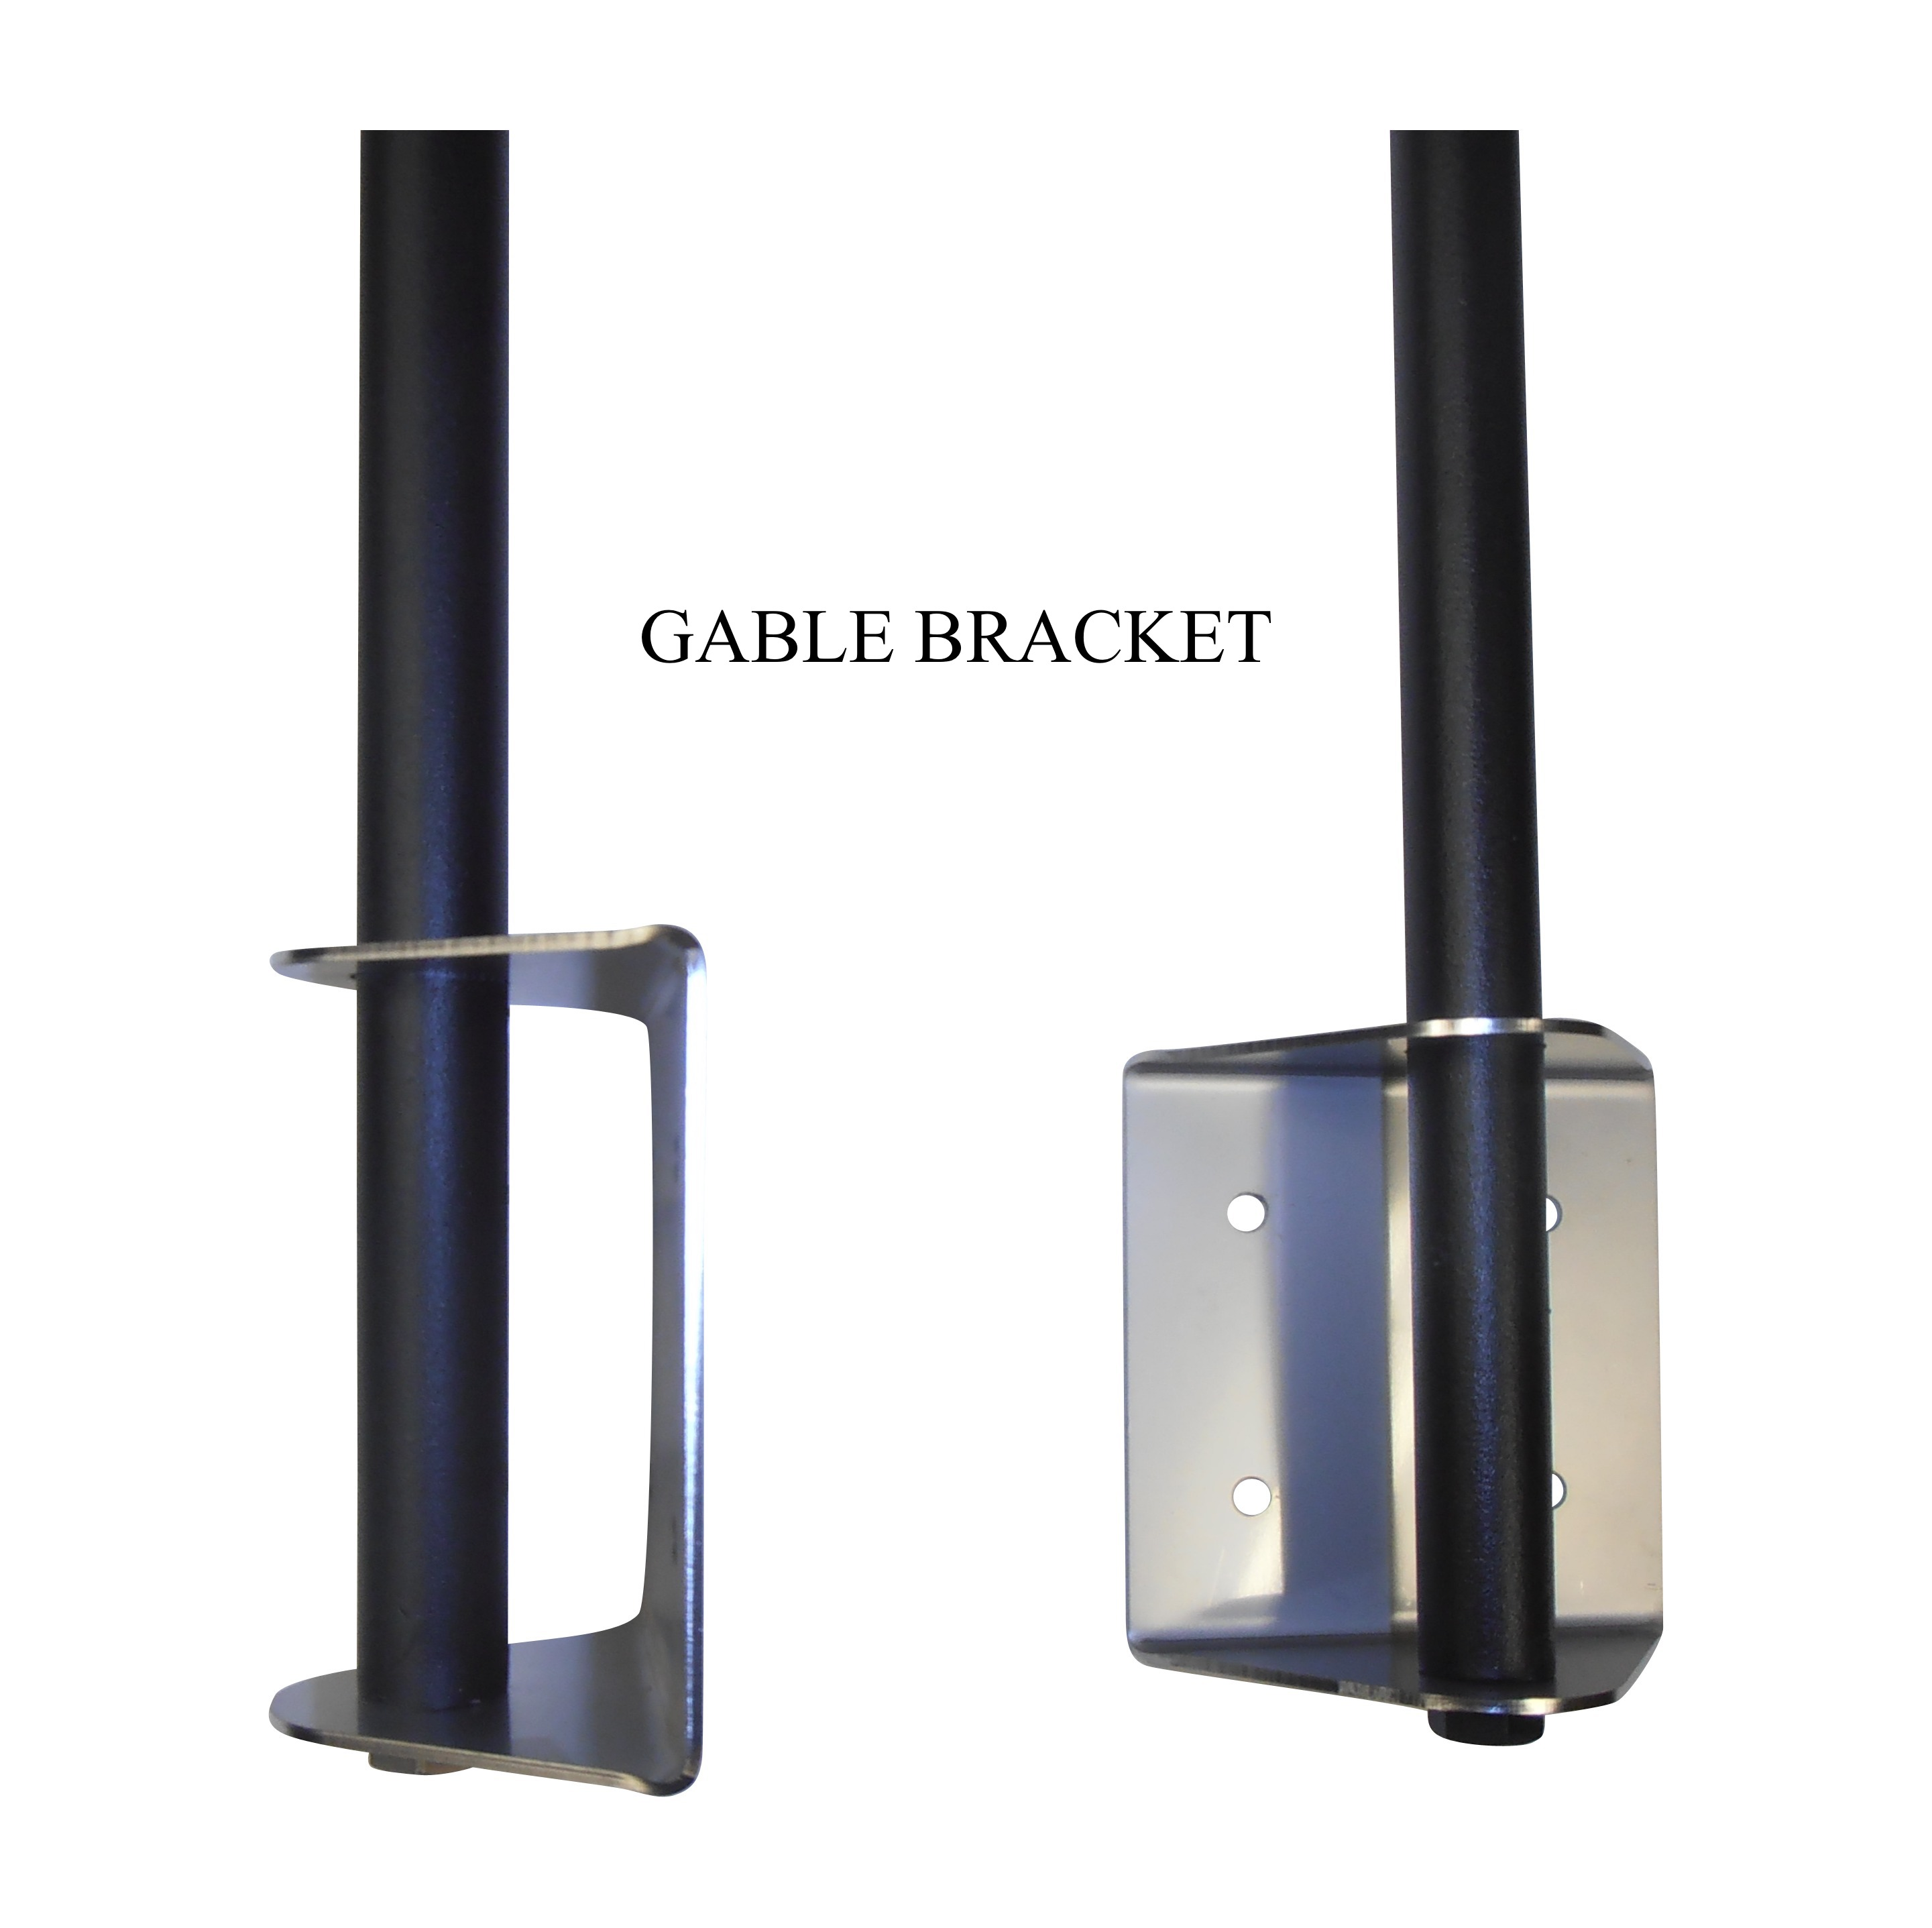 Gable Bracket XXX10 - End of the Game, (as depicted at Lords)